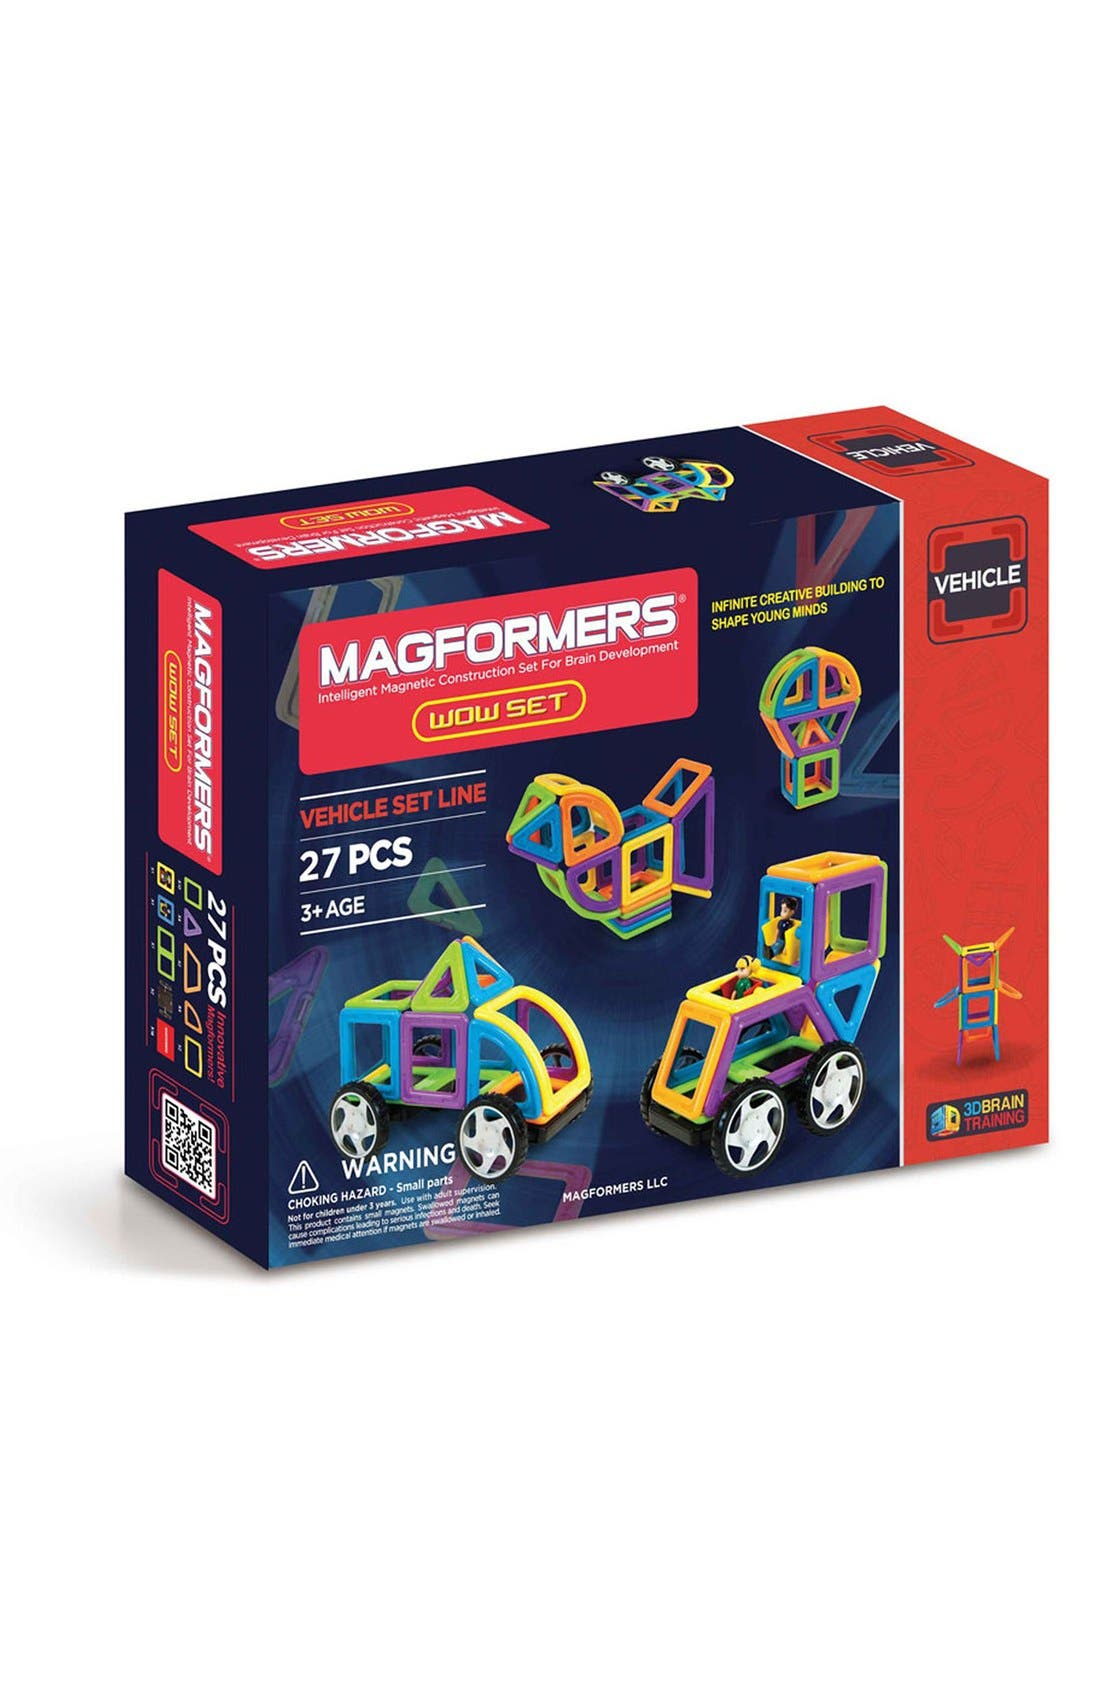 Alternate Image 1 Selected - Magformers 'Vehicle - WOW' Magnetic 3D Construction Set